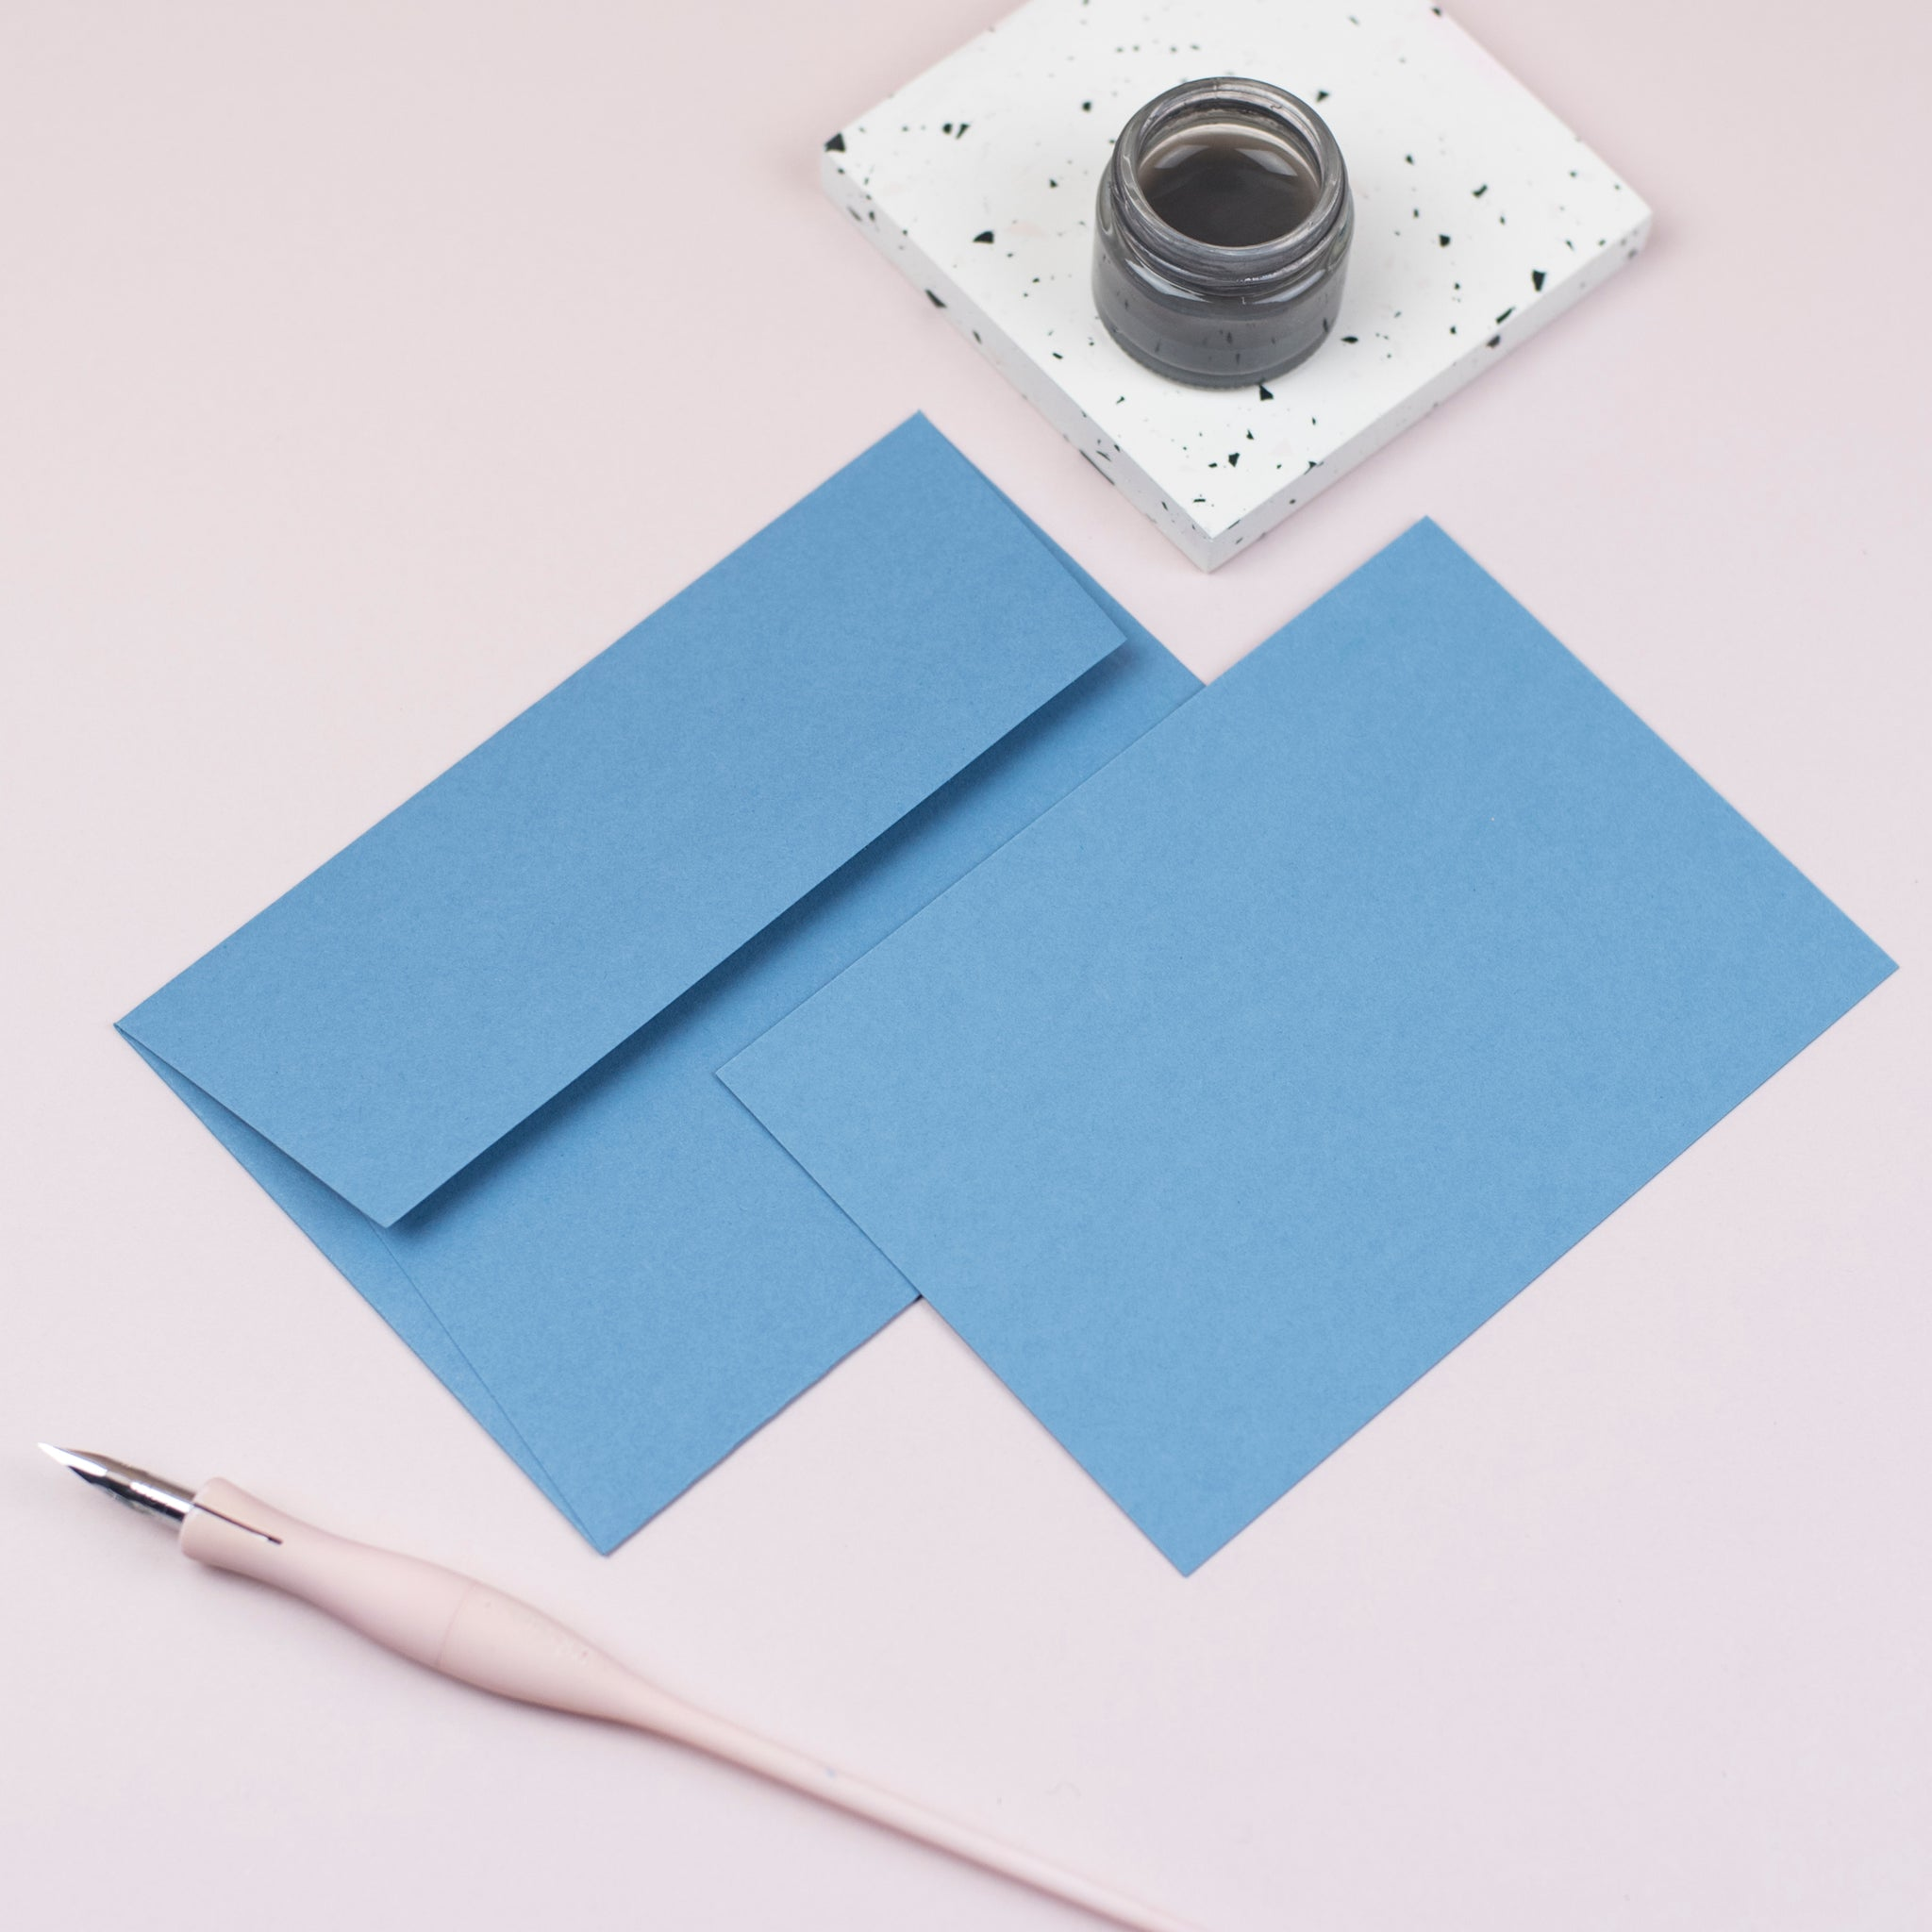 Luxury cornflower notecards and envelopes